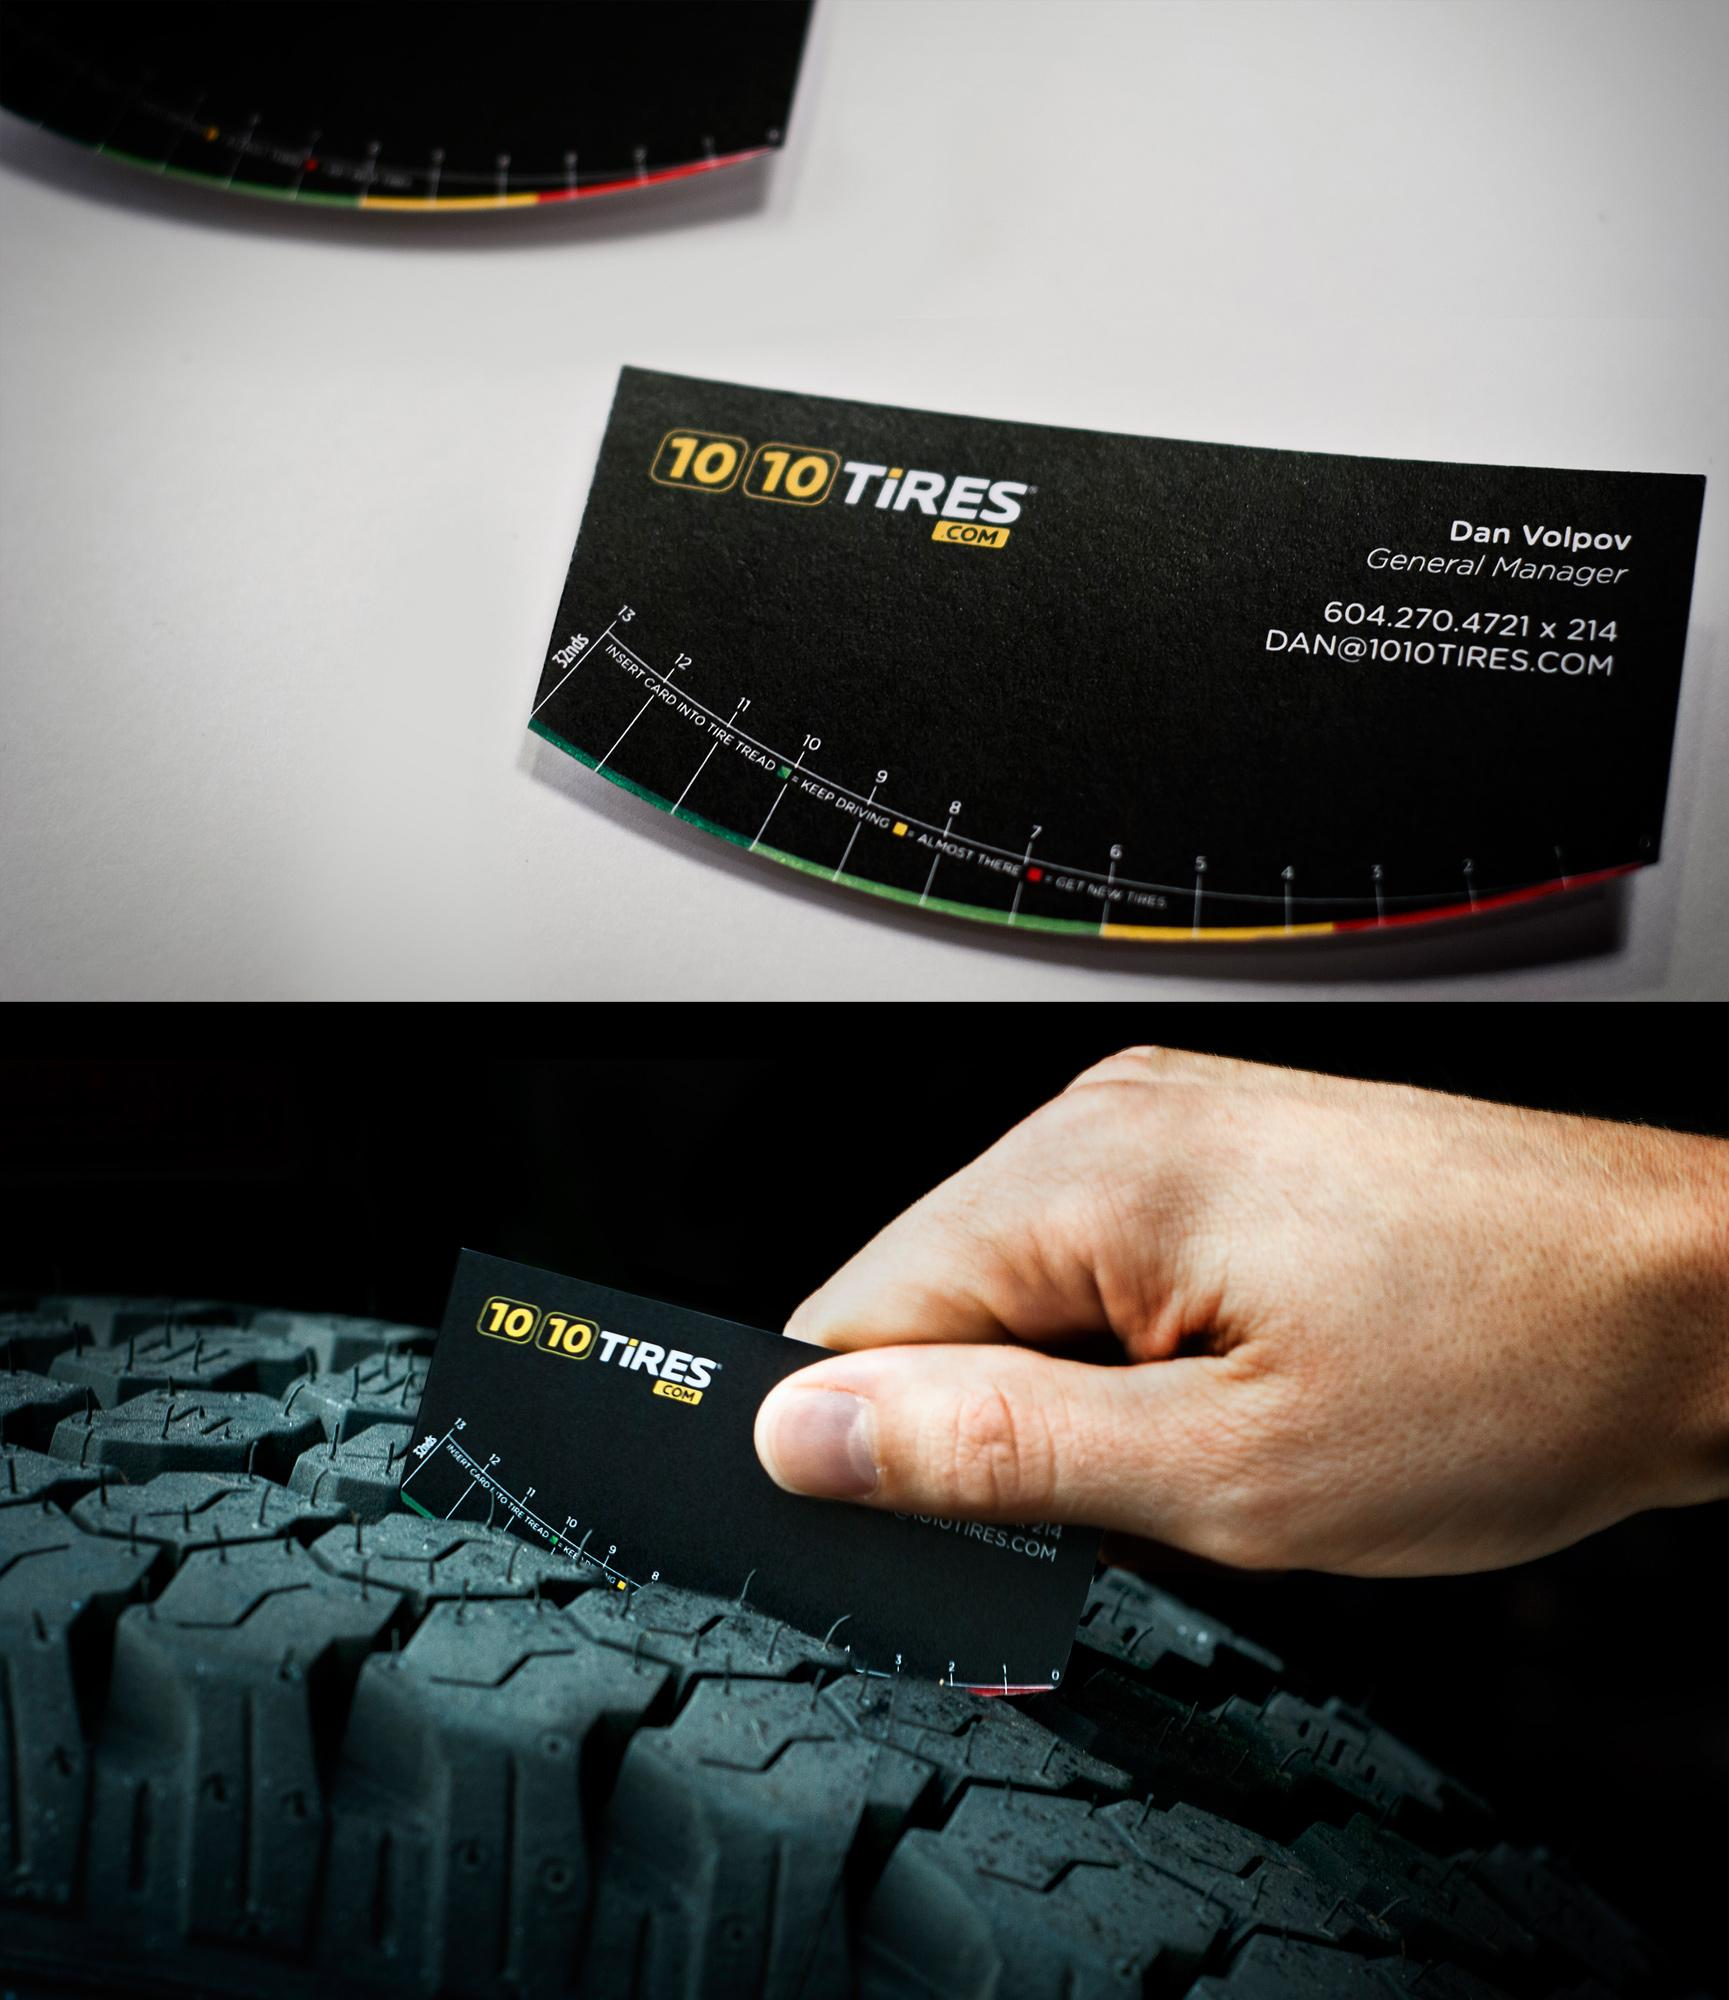 1010 Tires Direct Ad -  Tire tread business card